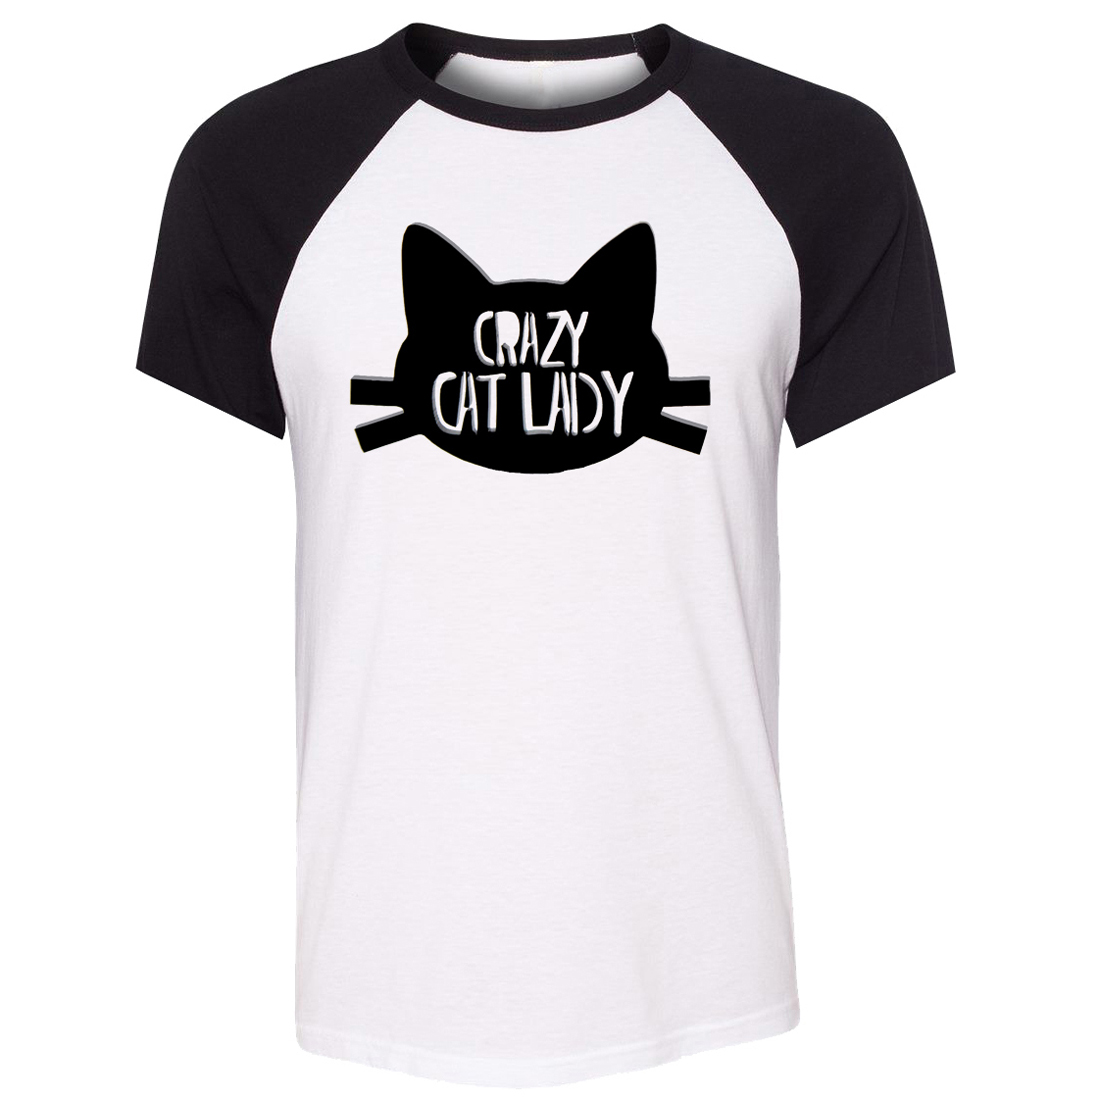 Buy idzn unisex summer t shirt funny for Crazy t shirt designs